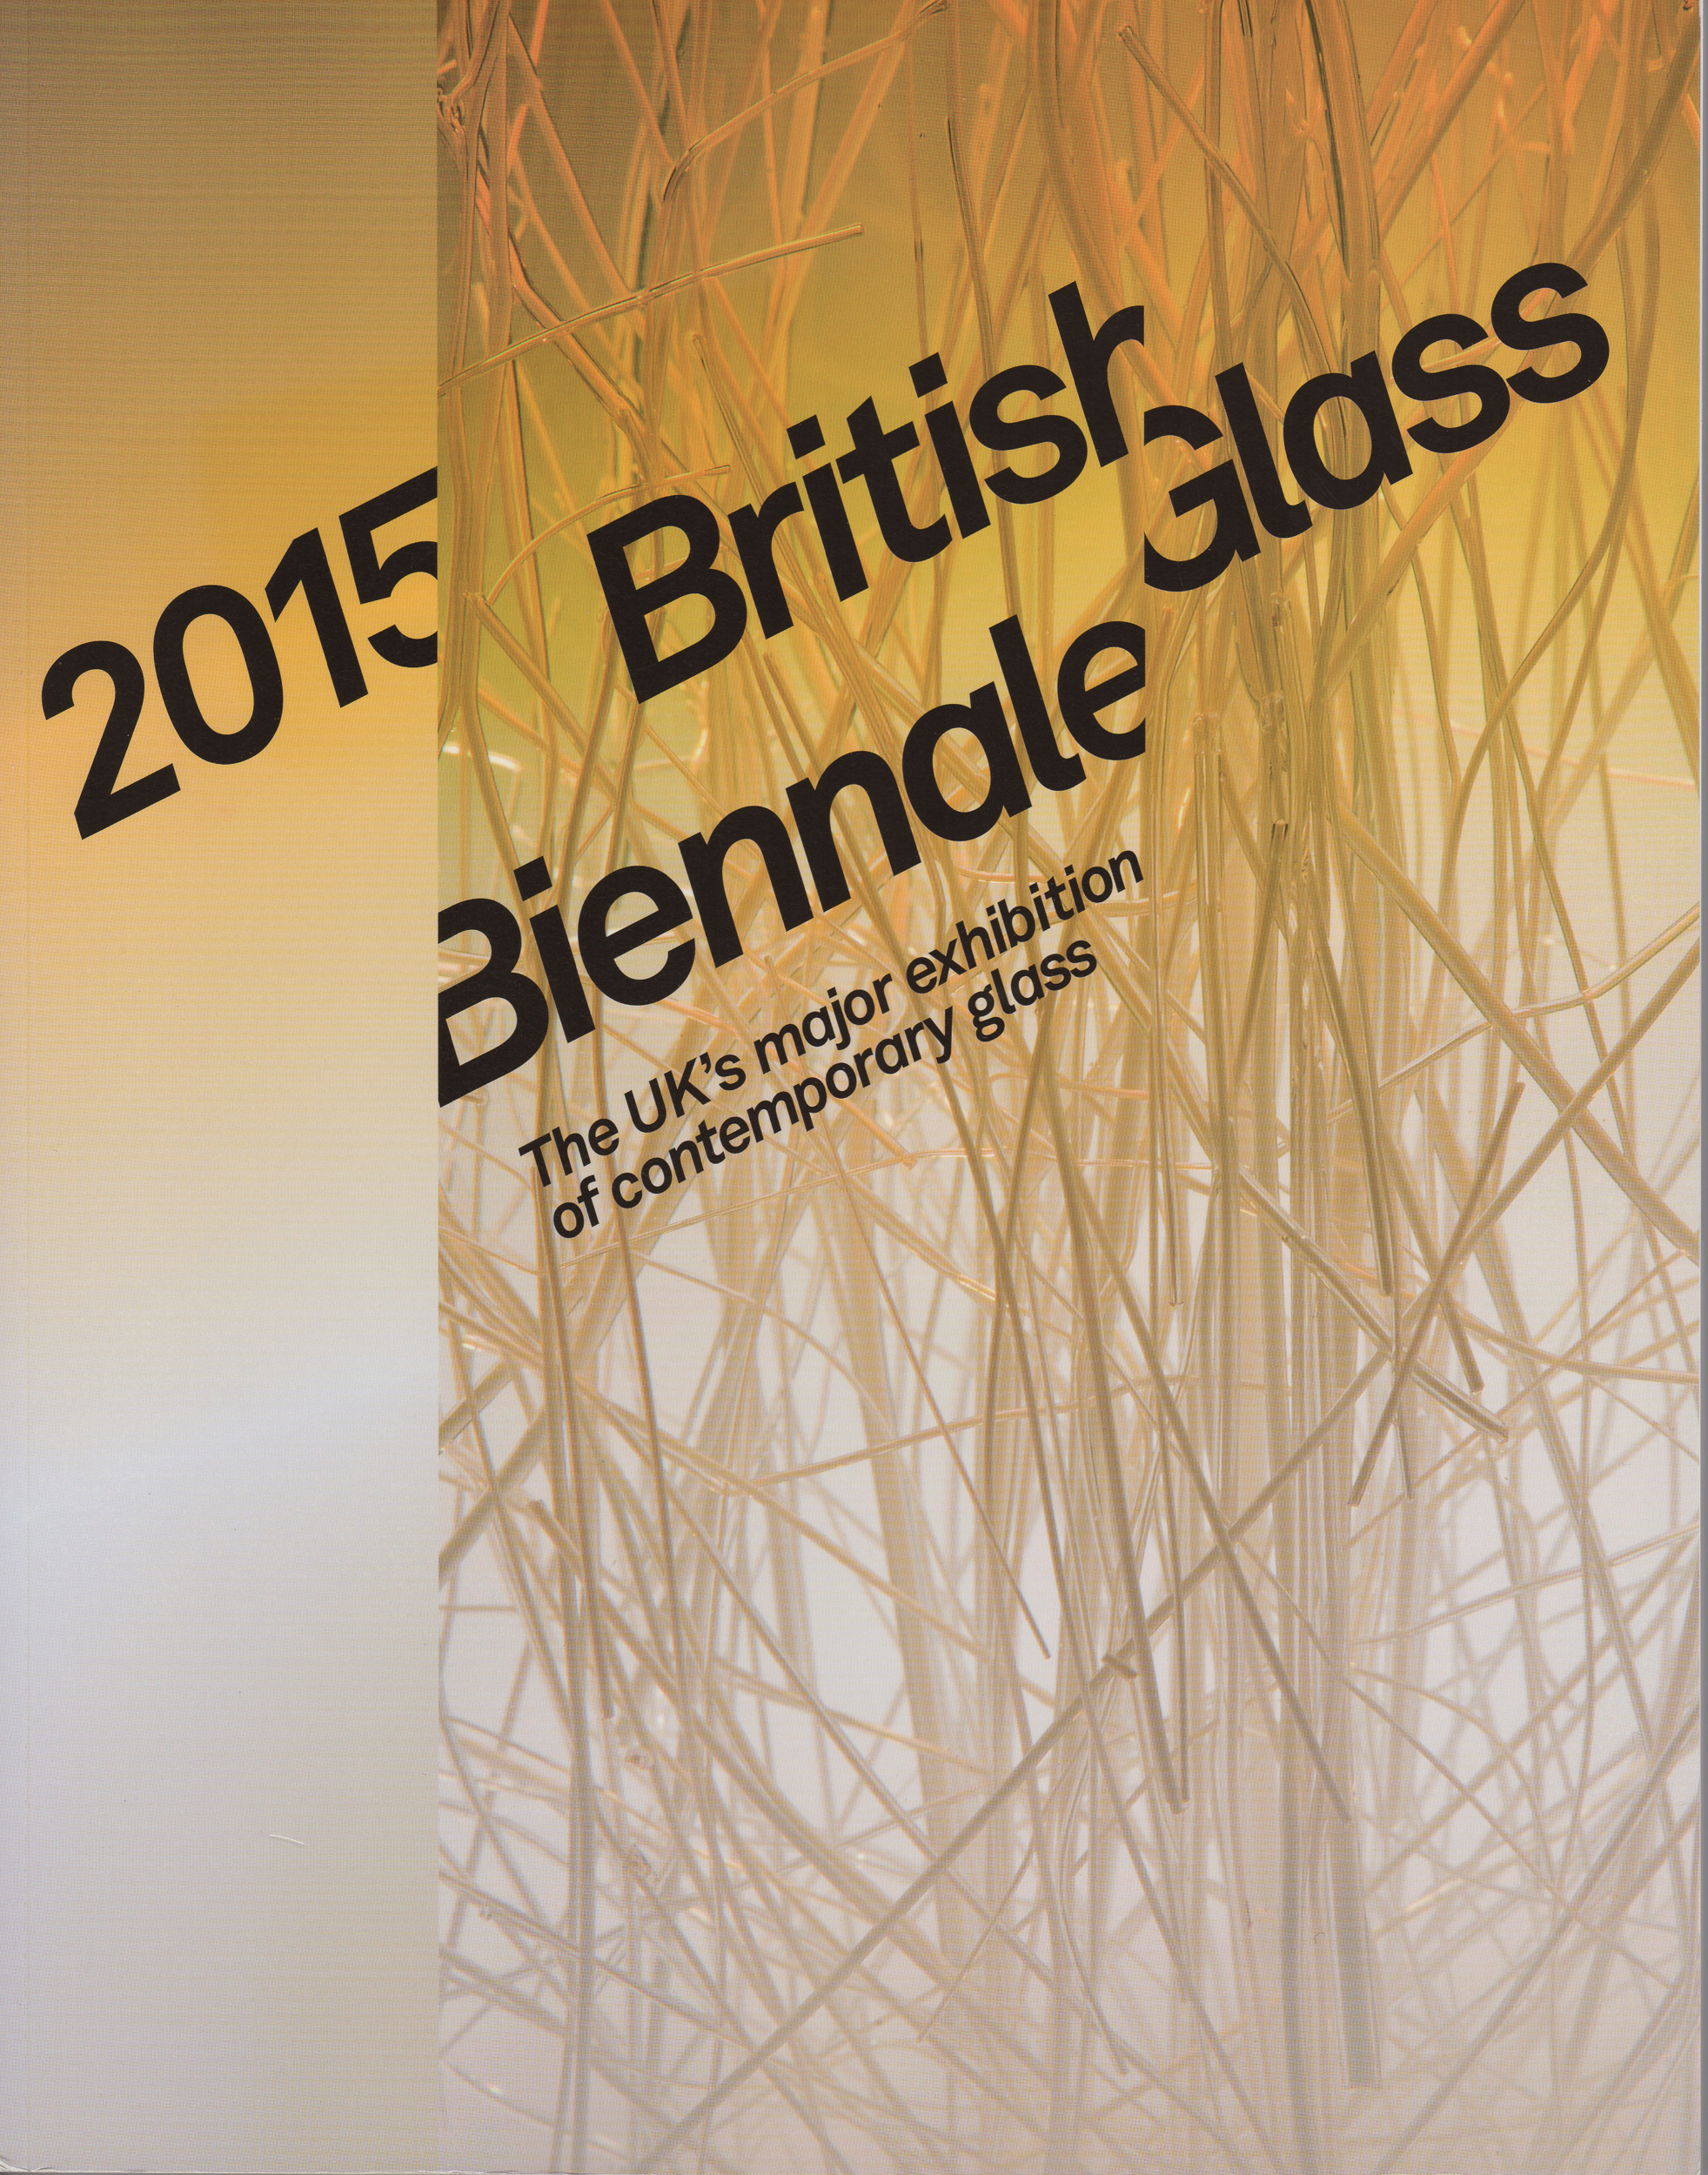 British Glass Biennale 2015.jpeg